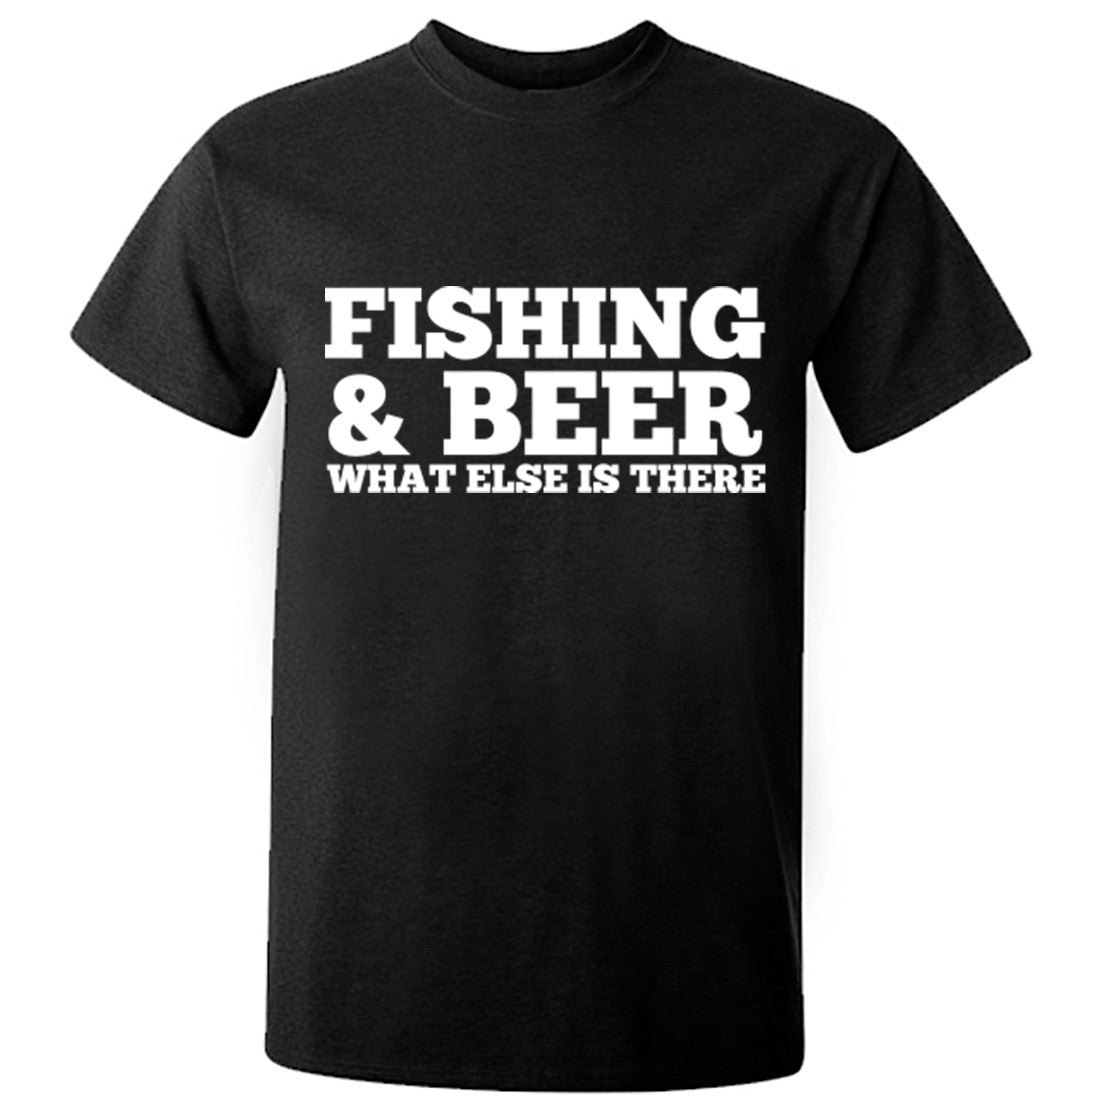 Fishing And Beer What Else Is There Unisex Fit T-Shirt K0674 - Illustrated Identity Ltd.